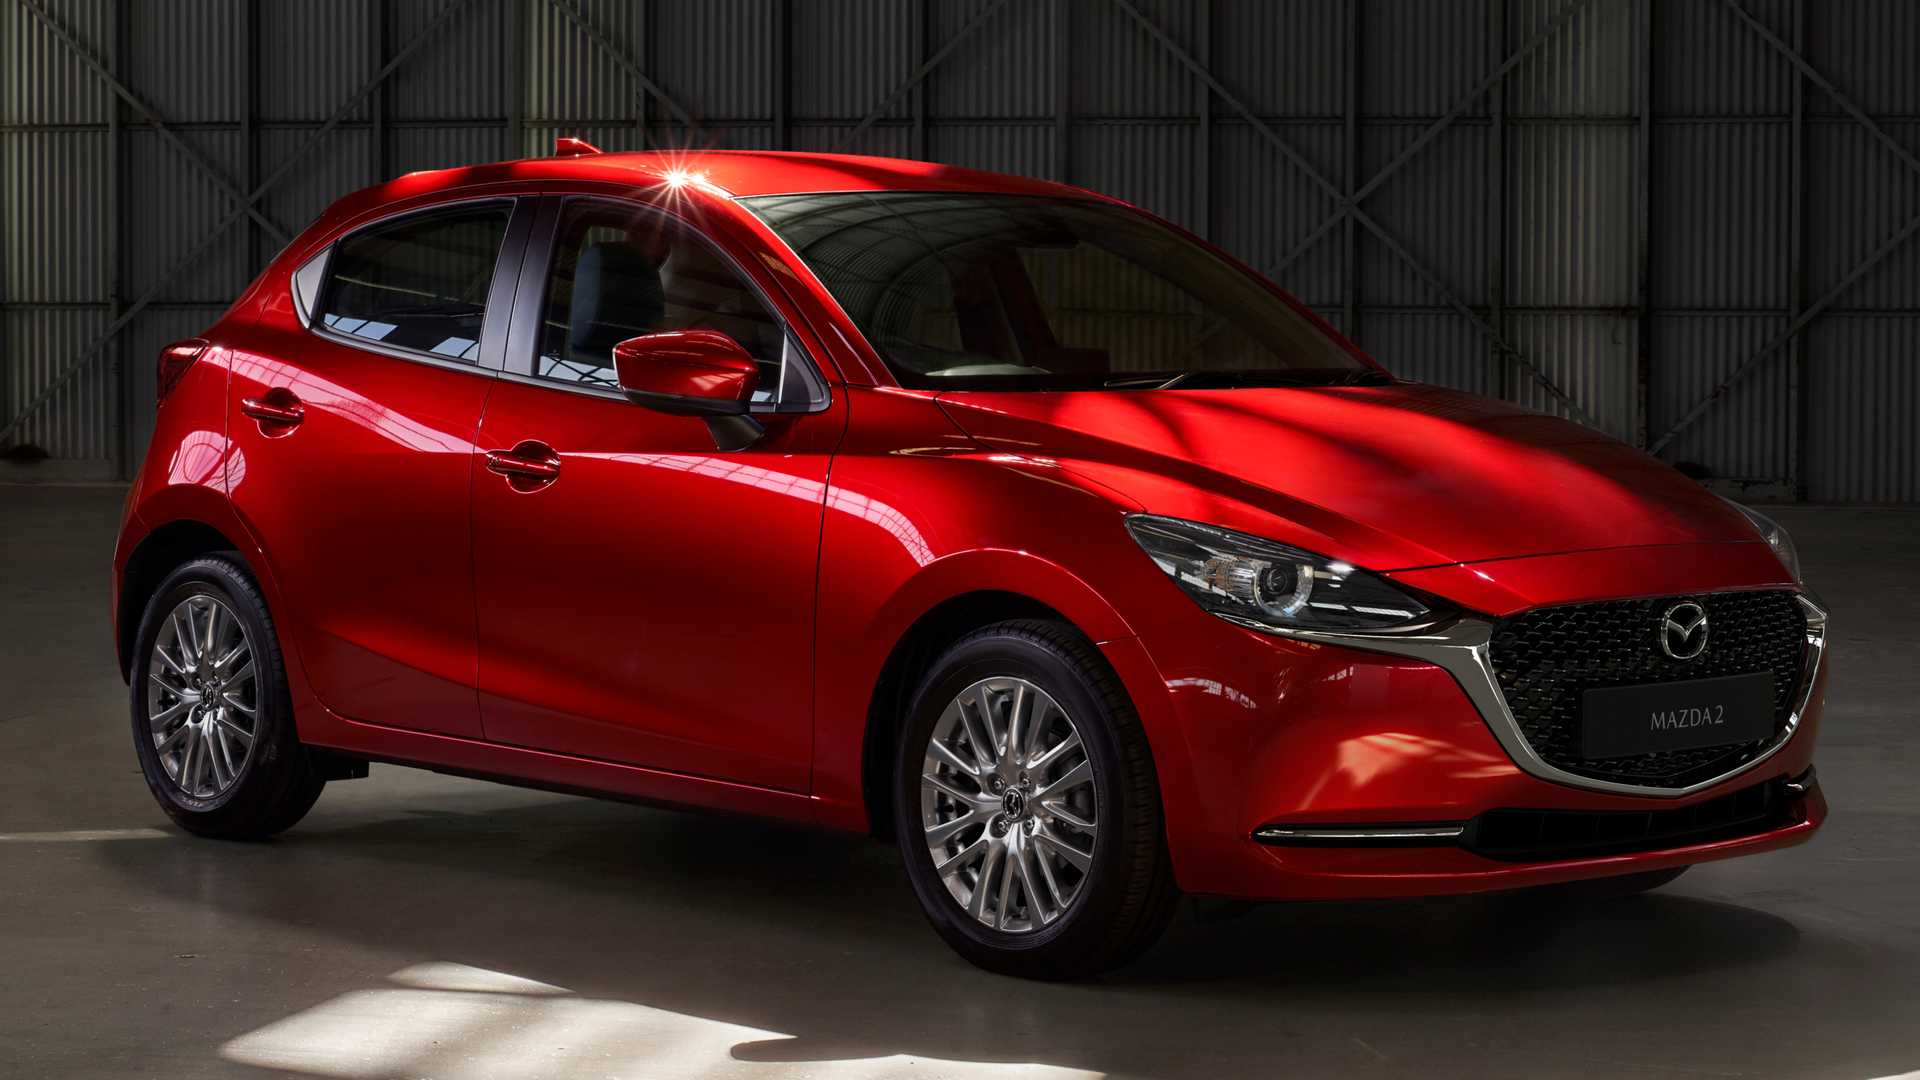 2019 Mazda 3 Hatchback Redesign Release Date Price >> 2020 Mazda2 Revealed With More Tech And Refinement